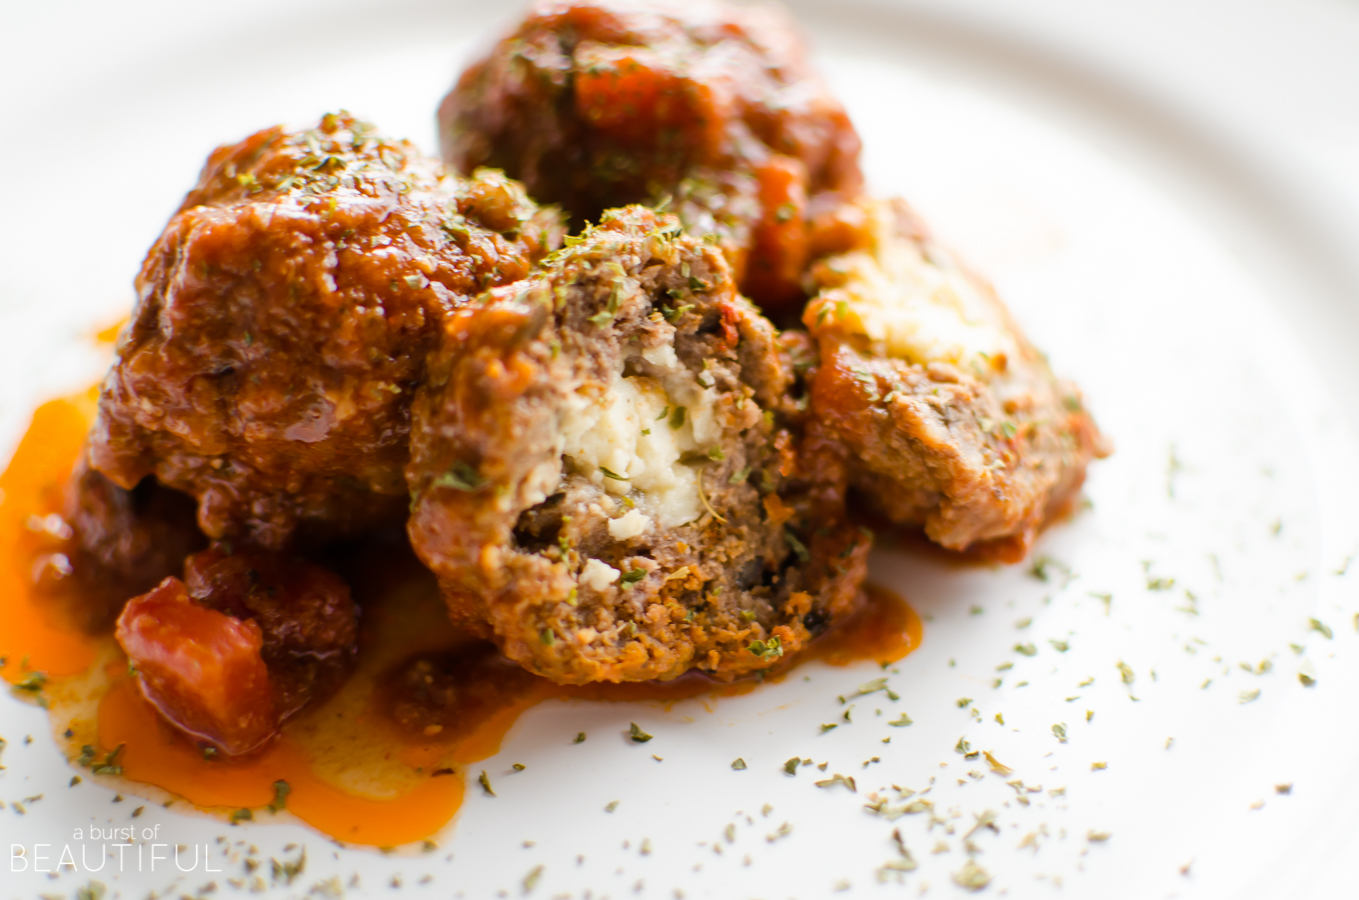 Perfect as an appetizer or served as part of a meal, our Slow Cooker Stuffed Mediterranean Meatballs are stuffed with feta cheese, sundried tomatoes and black olives to create a mouthwatering flavour combination | A Burst of Beautiful